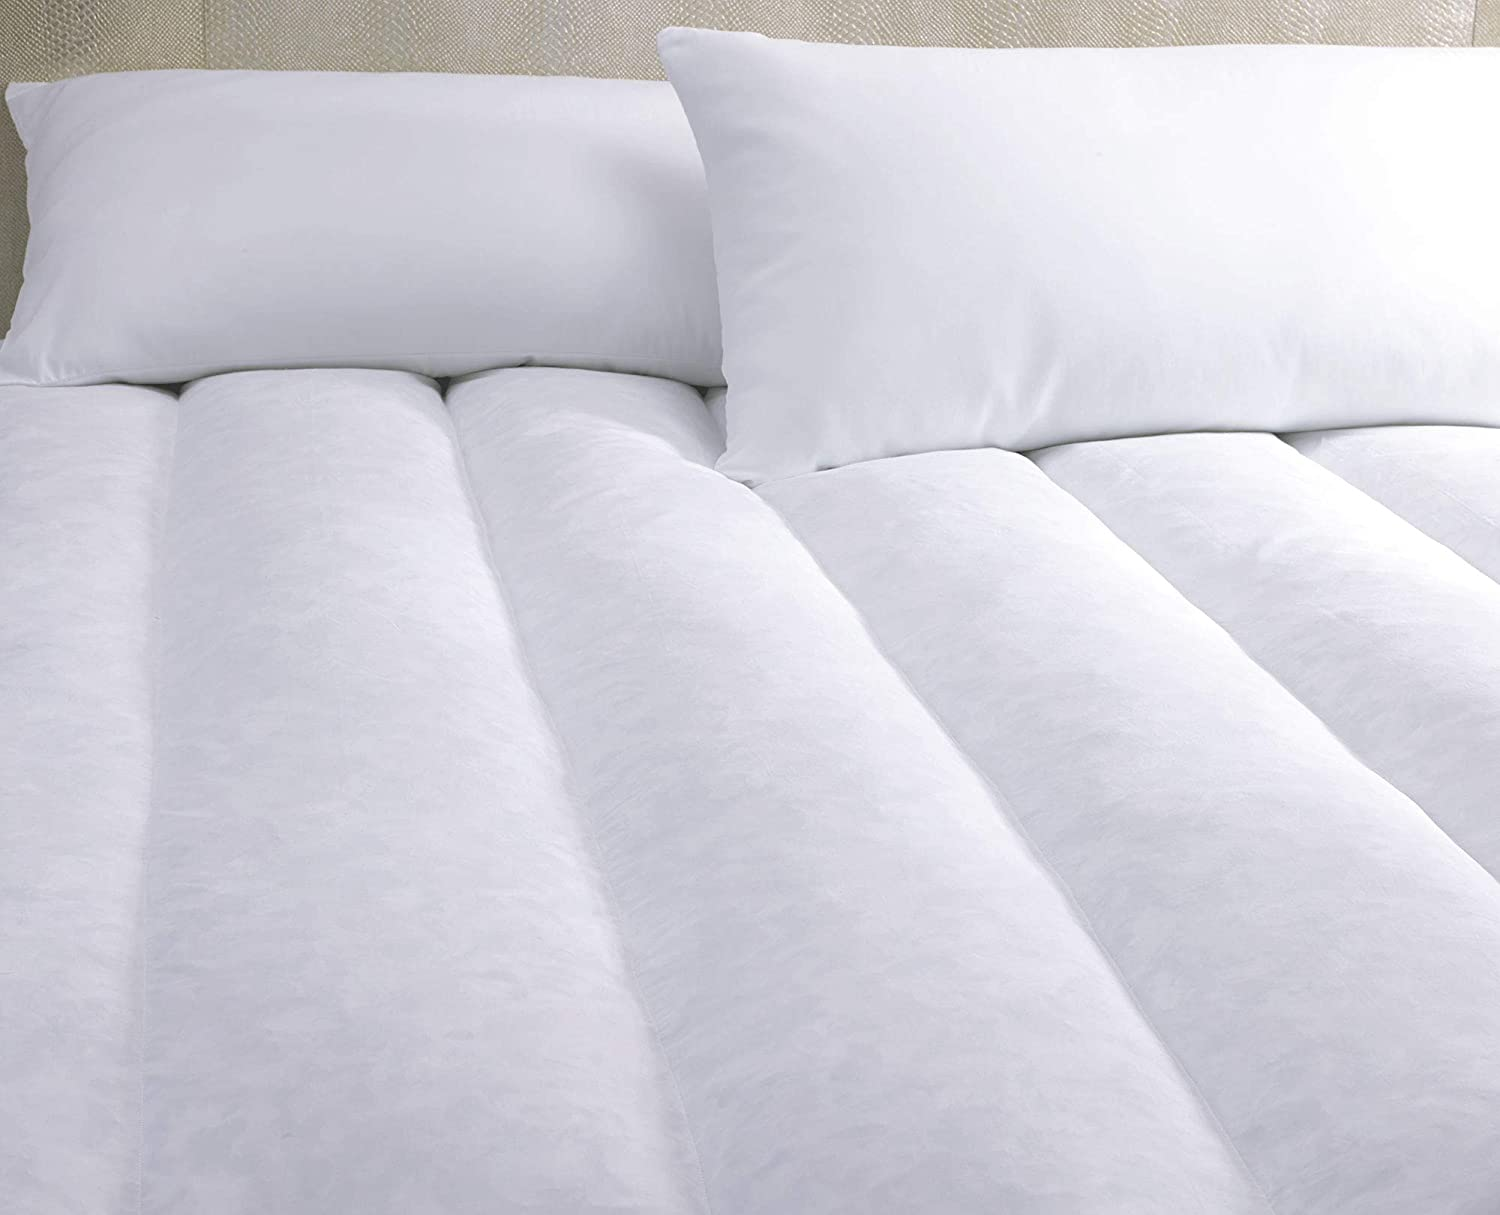 W Hotels Featherbed - Luxurious 54 Full Over Super intense SALE item handling Soft Duck